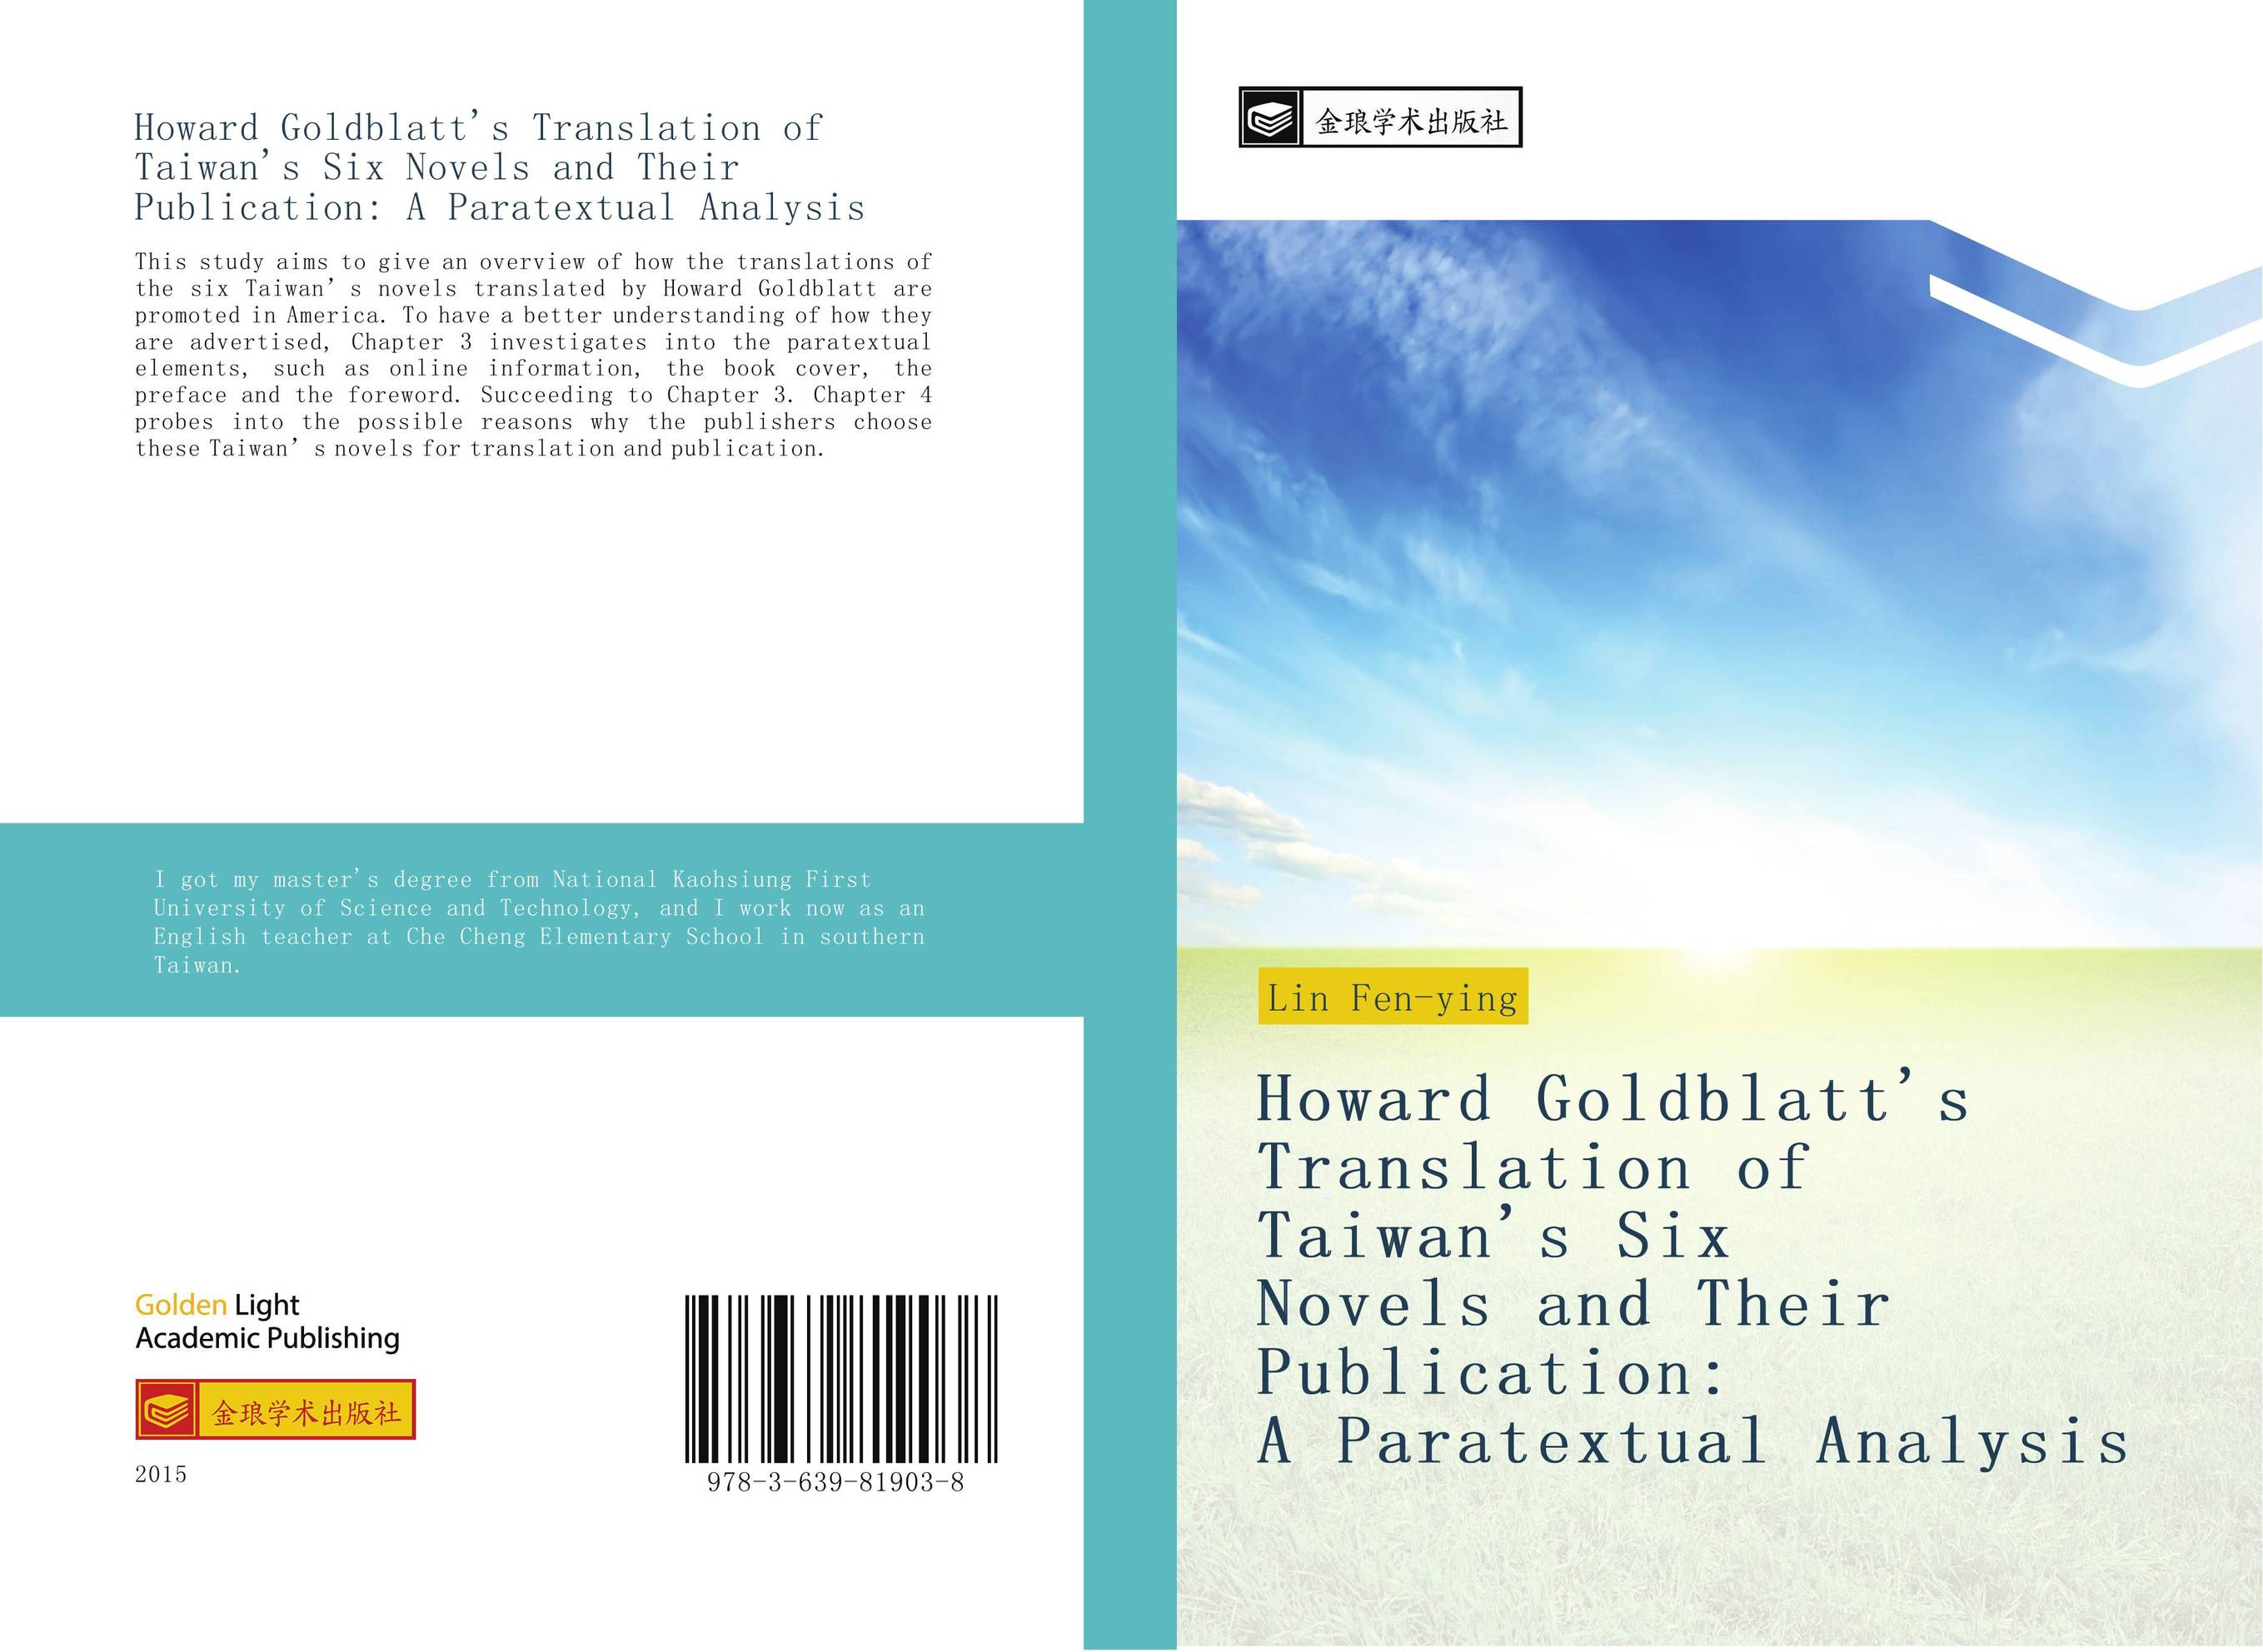 Howard Goldblatt's Translation of Taiwan's Six Novels and Their Publication: A Paratextual Analysis the complete novels